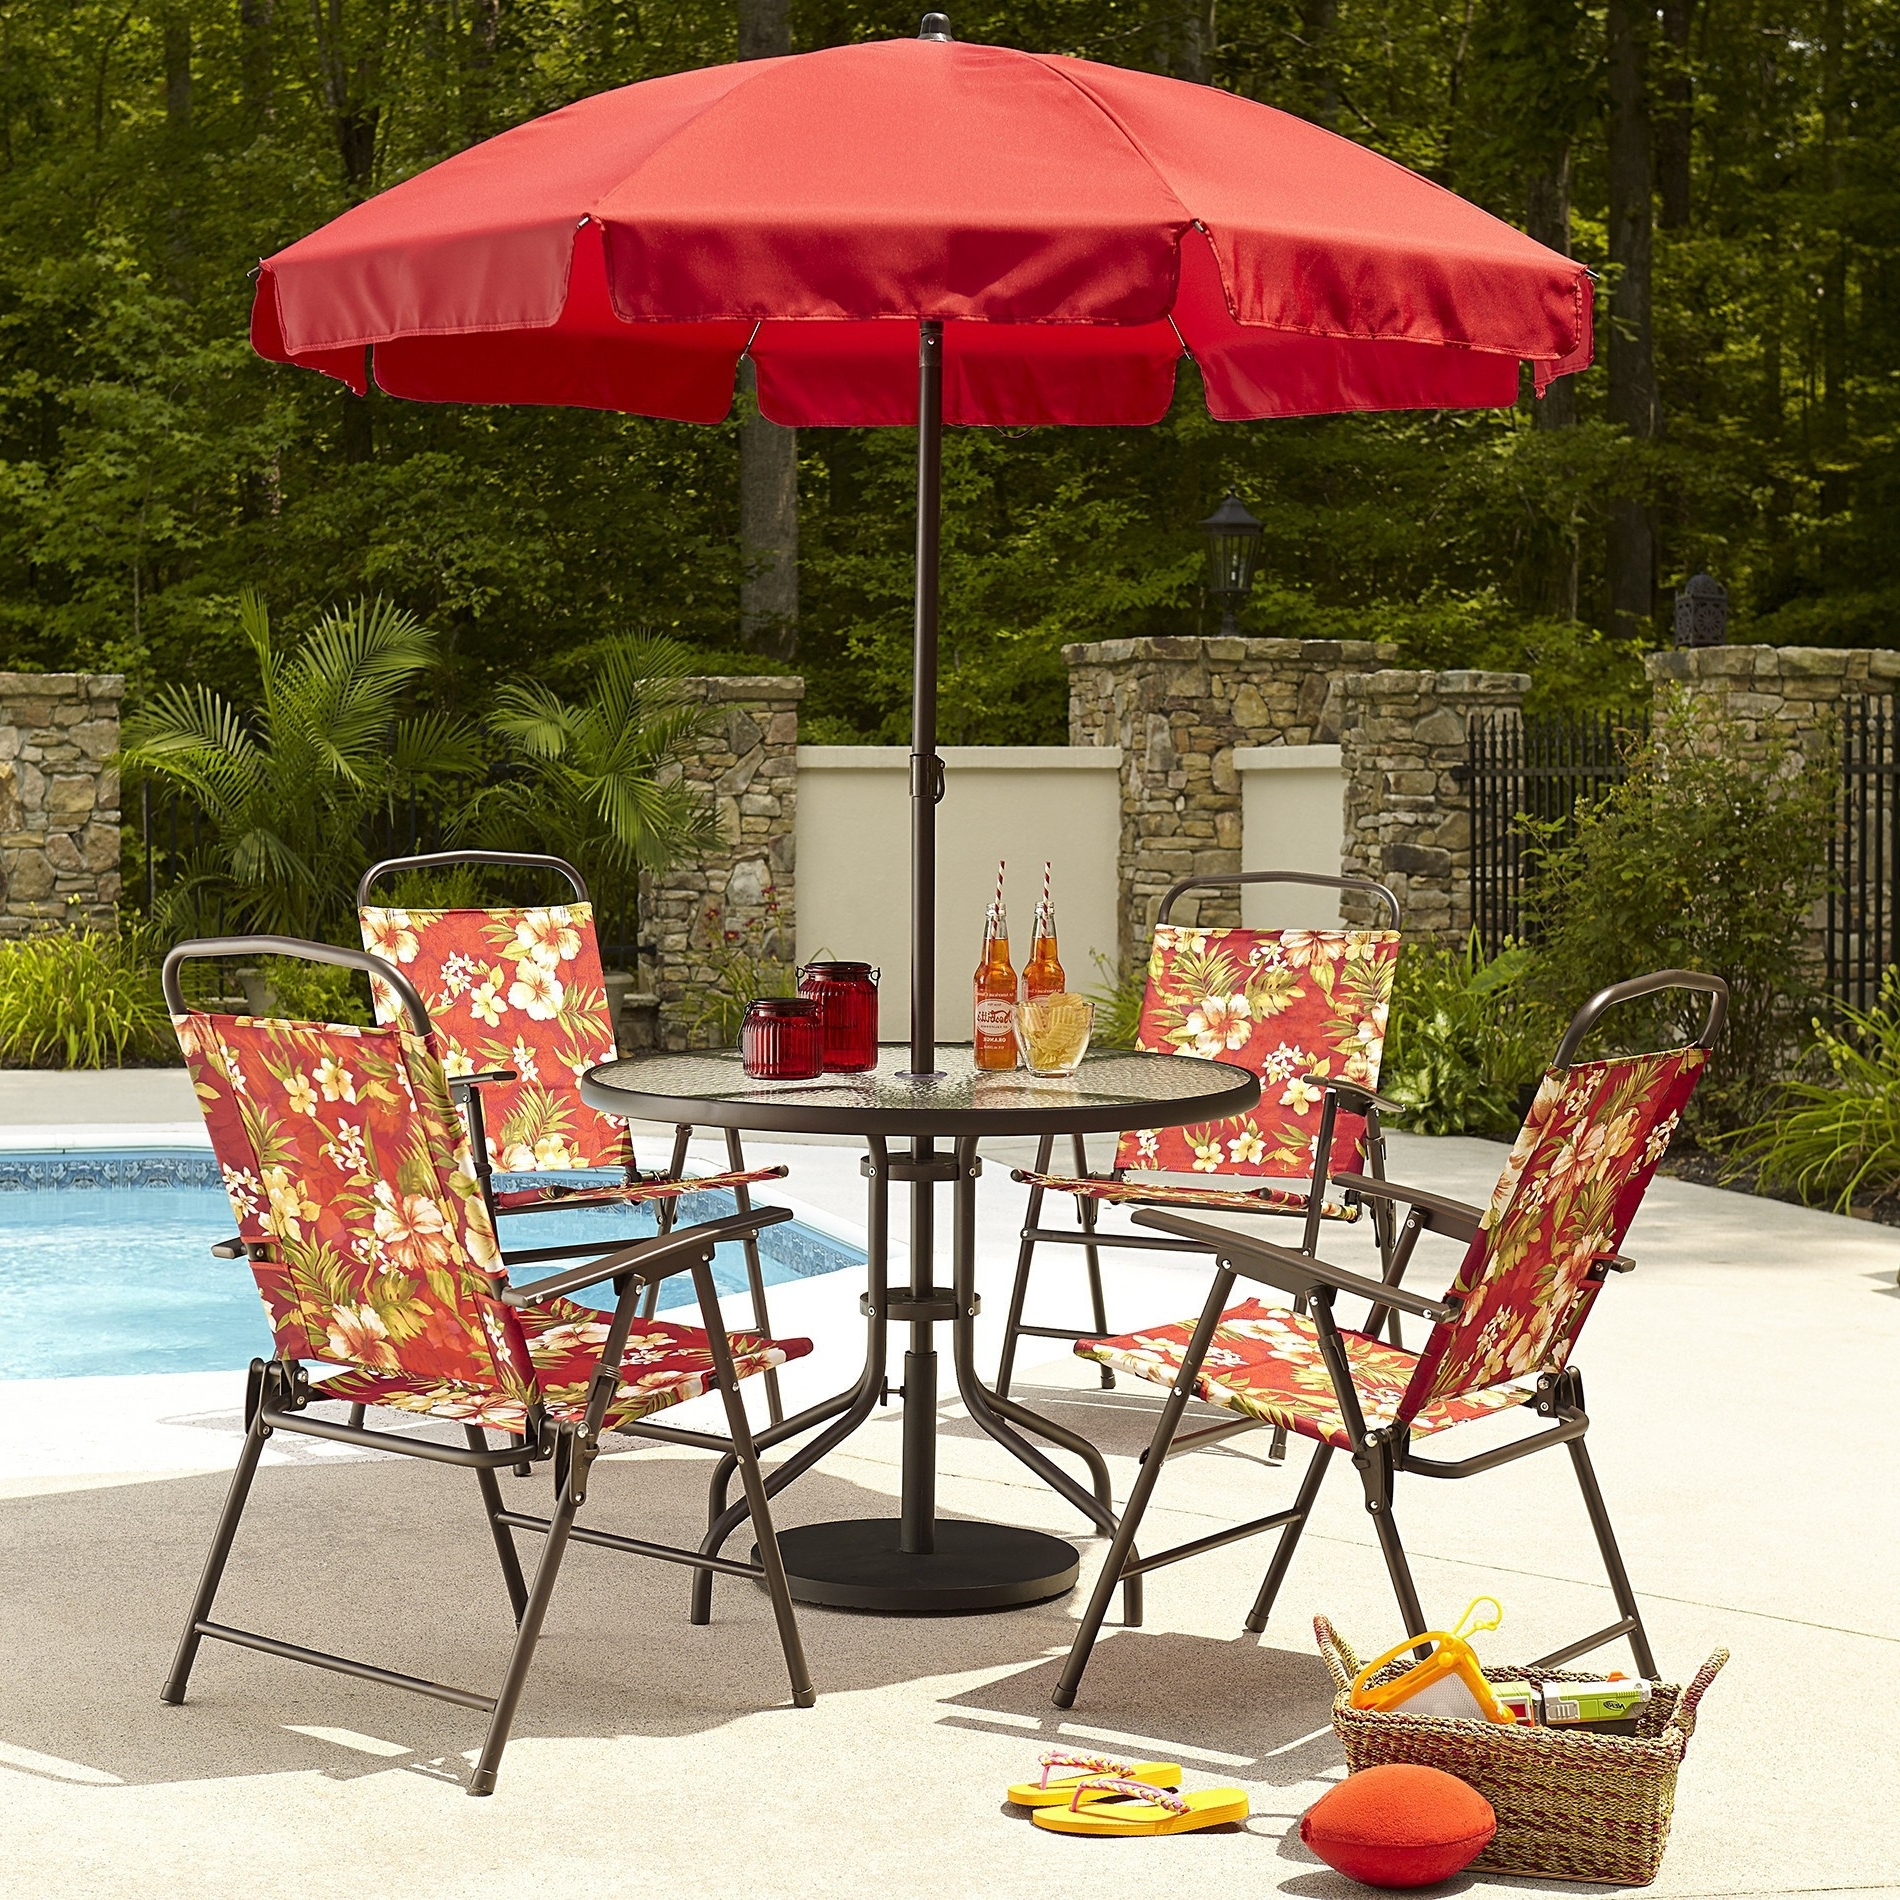 Well Known Costco Outdoor Umbrellas Elegant Chair Sams Club Patio Furniture Intended For Sams Club Patio Umbrellas (View 5 of 20)